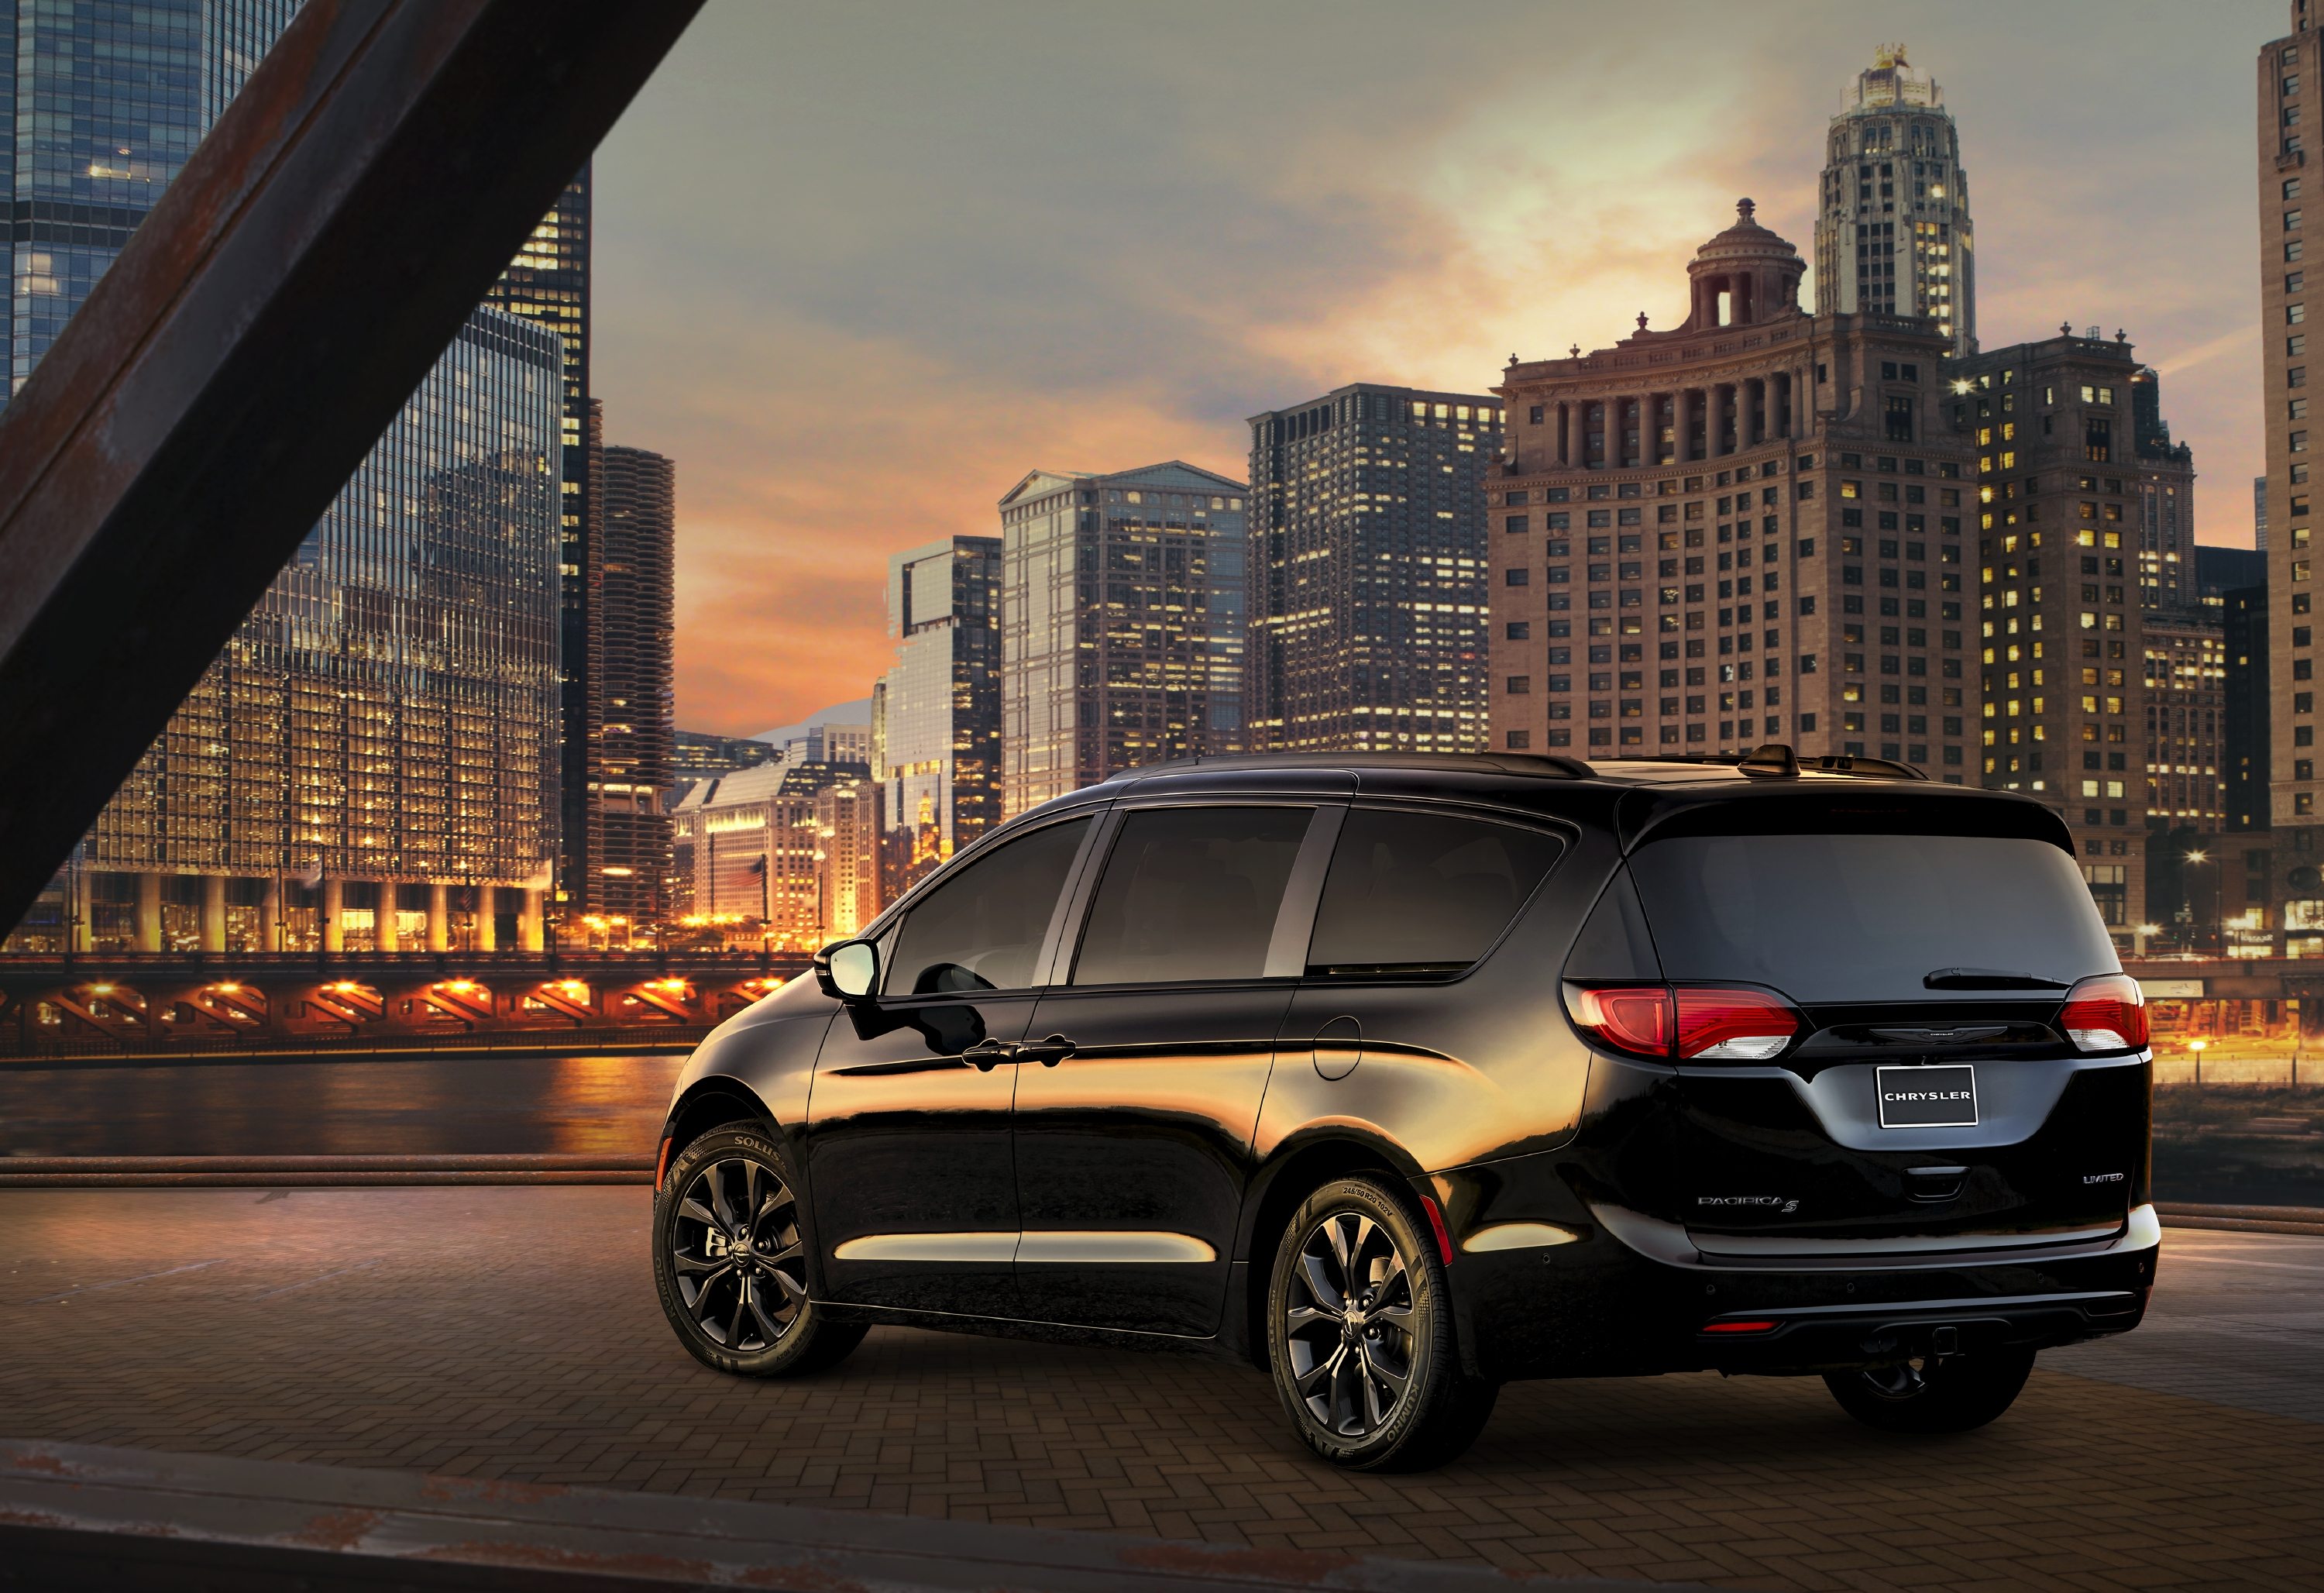 2020 Chrysler Pacifica: What's Changed